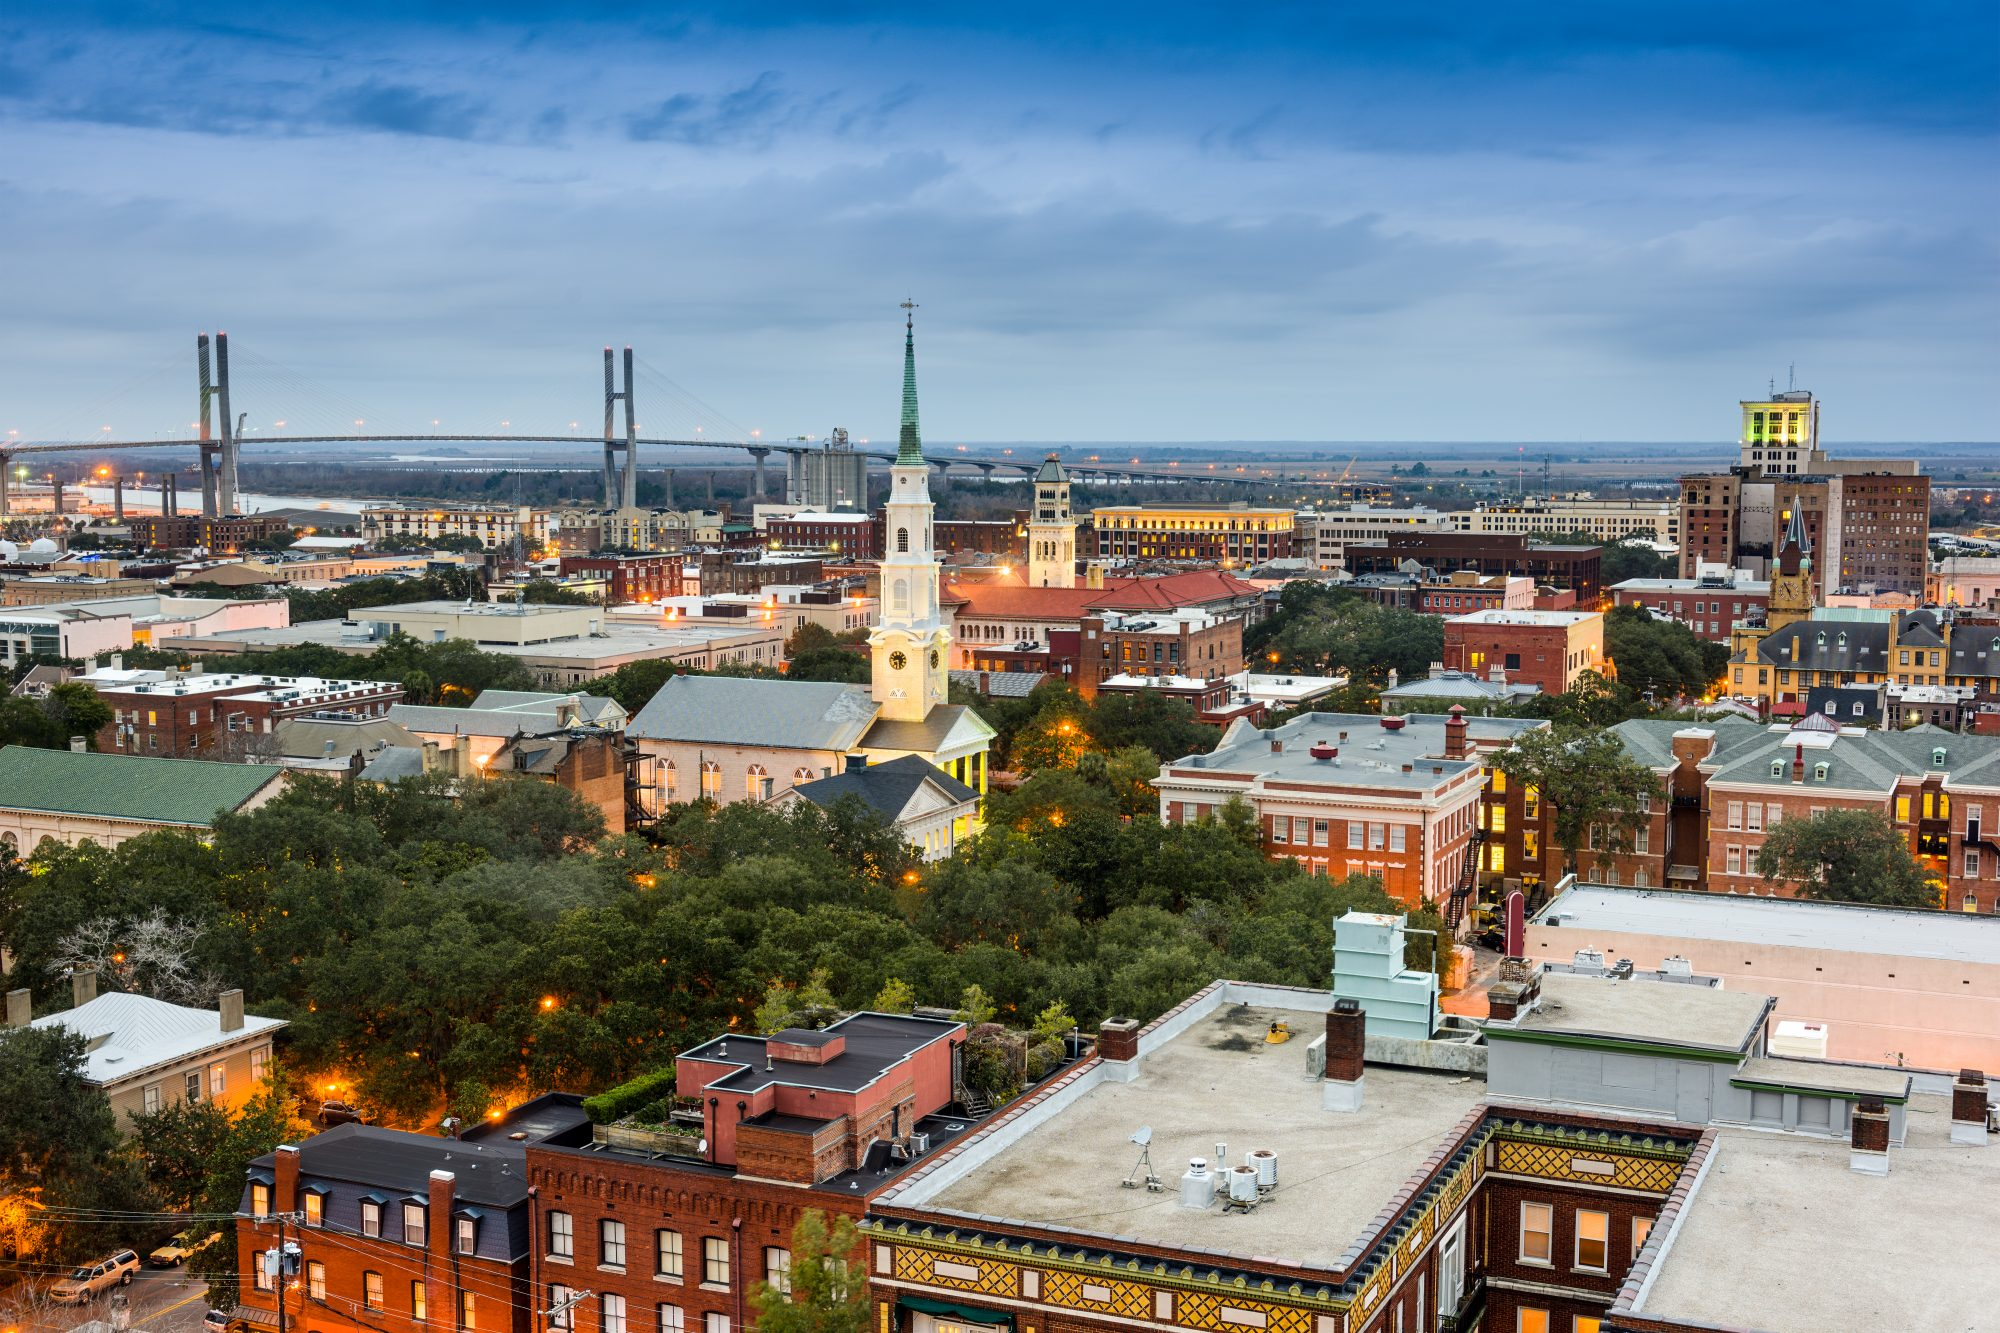 7. Savannah, Georgia